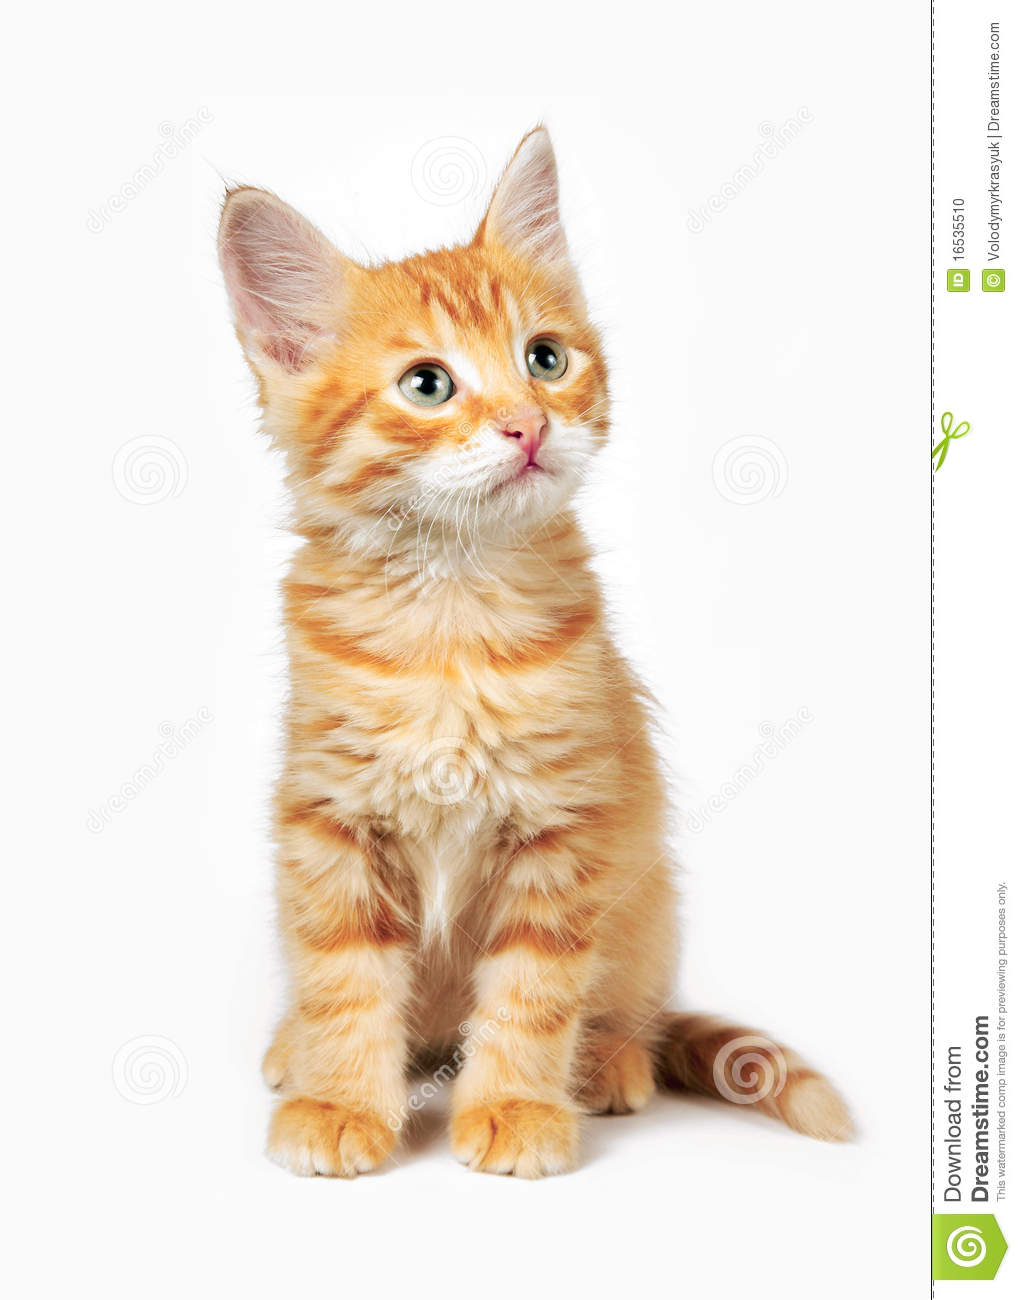 Free Use Of Ginger Cat Images